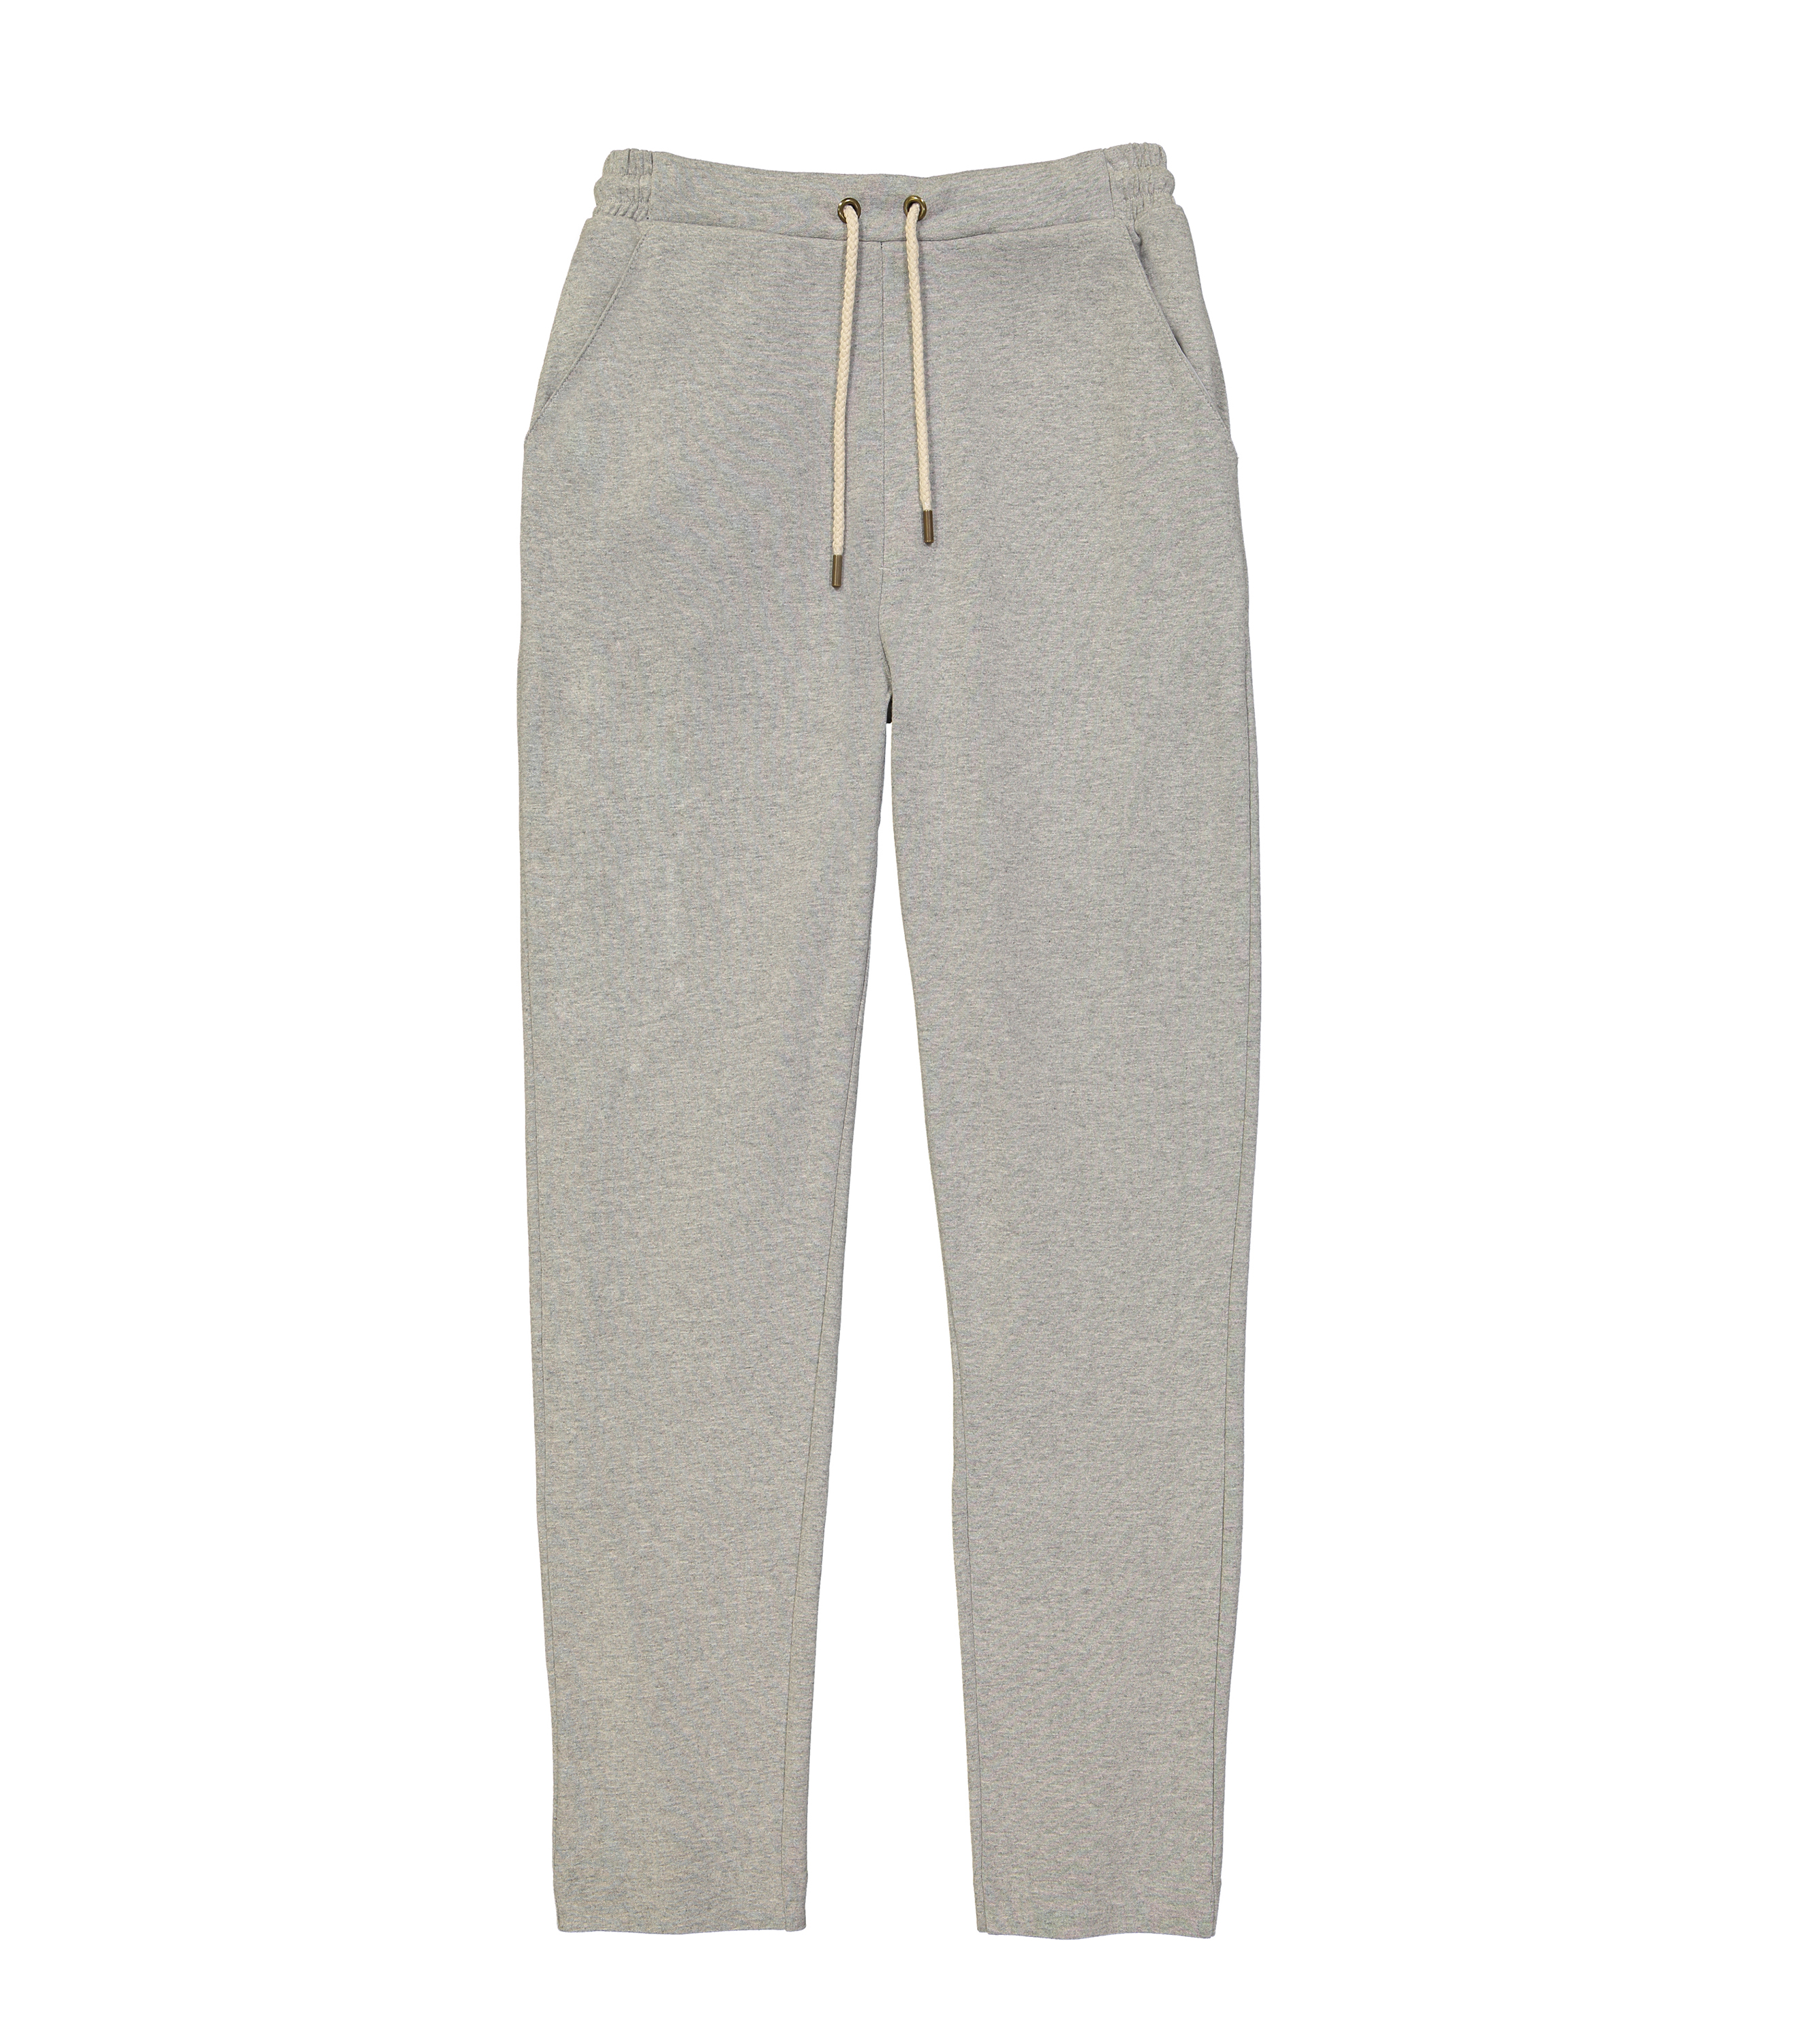 PANTS GN.DIM05 - Marl grey